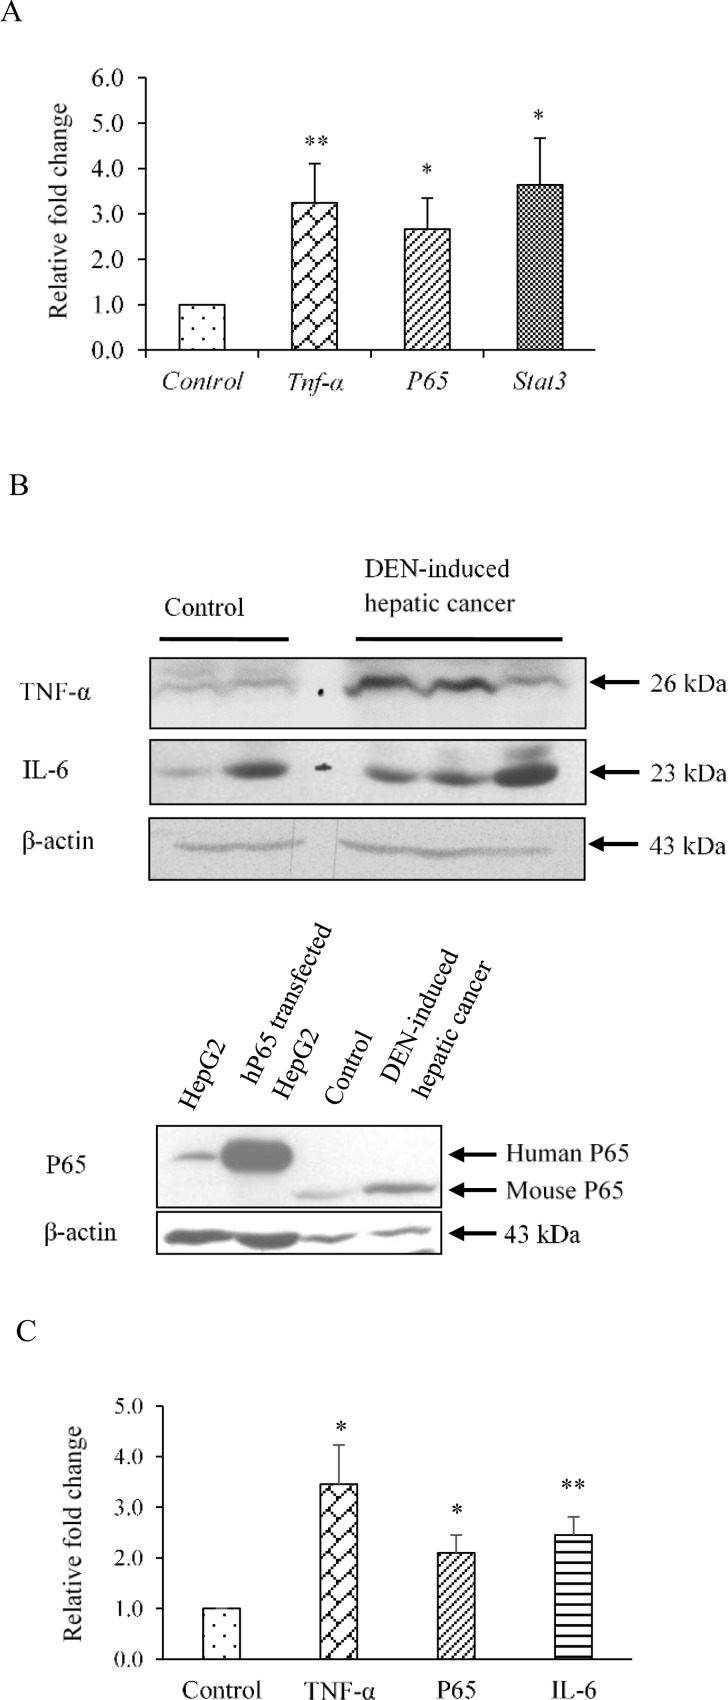 Levels of inflammatory proteins are enhanced in DEN-induced hepatic cancer. A. Real-time PCR analysis was performed for Tnf-α , p65 , and Stat3 with total RNA extracted from mouse liver tissues of saline-treated control and DEN-induced hepatic cancer mice. GAPDH served as an internal control. B. Cell extracts of control and DEN-induced hepatic cancerous mice liver tissues were electrophoresed (50 μg per sample) on a 10% SDS-PAGE. The proteins were transferred onto the methanol-activated PVDF membrane and probed with anti-mouse TNF-α, anti-mouse P65, and anti-mouse IL-6 antibody. Bands of human and mouse P65 were detected at 65 KDa and 60 KDa respectively. β-Actin antibody served as control; C. The relative endogenous TNF-α, P65 and IL-6 protein expressions in control and DEN-induced hepatic cancer were quantified by densitometry. The experiments were performed with seven samples of each control and DEN-induced cancerous mice, and the values are represented as the mean ±SE. The P-value represents the significance in DEN-induced hepatic cancer mice as compared to the control mice. P-value